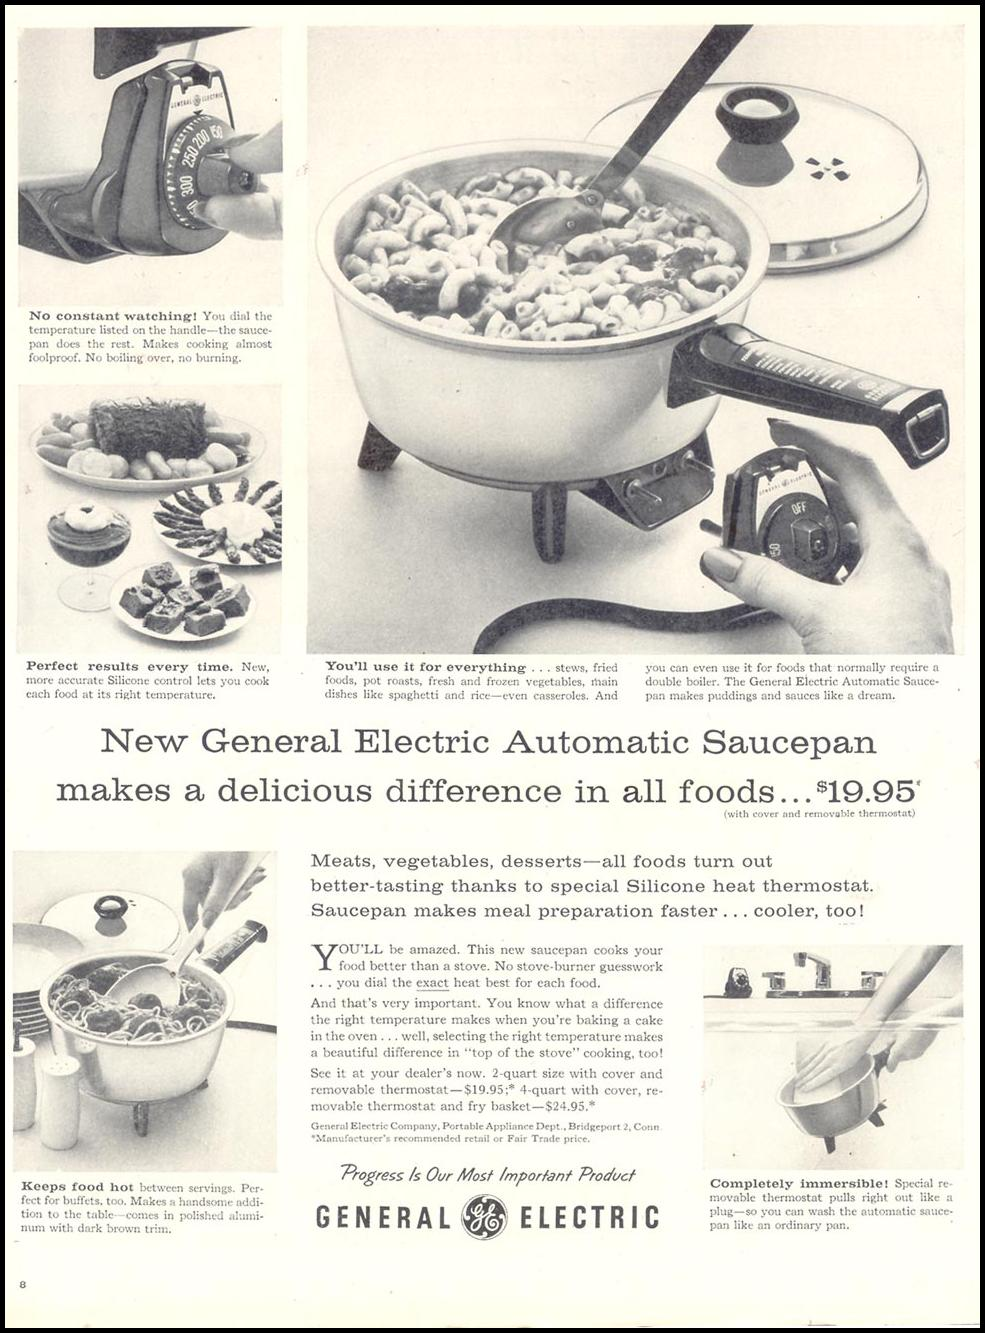 GENERAL ELECTRIC AUTOMATIC SAUCEPAN LIFE 11/11/1957 p. 8